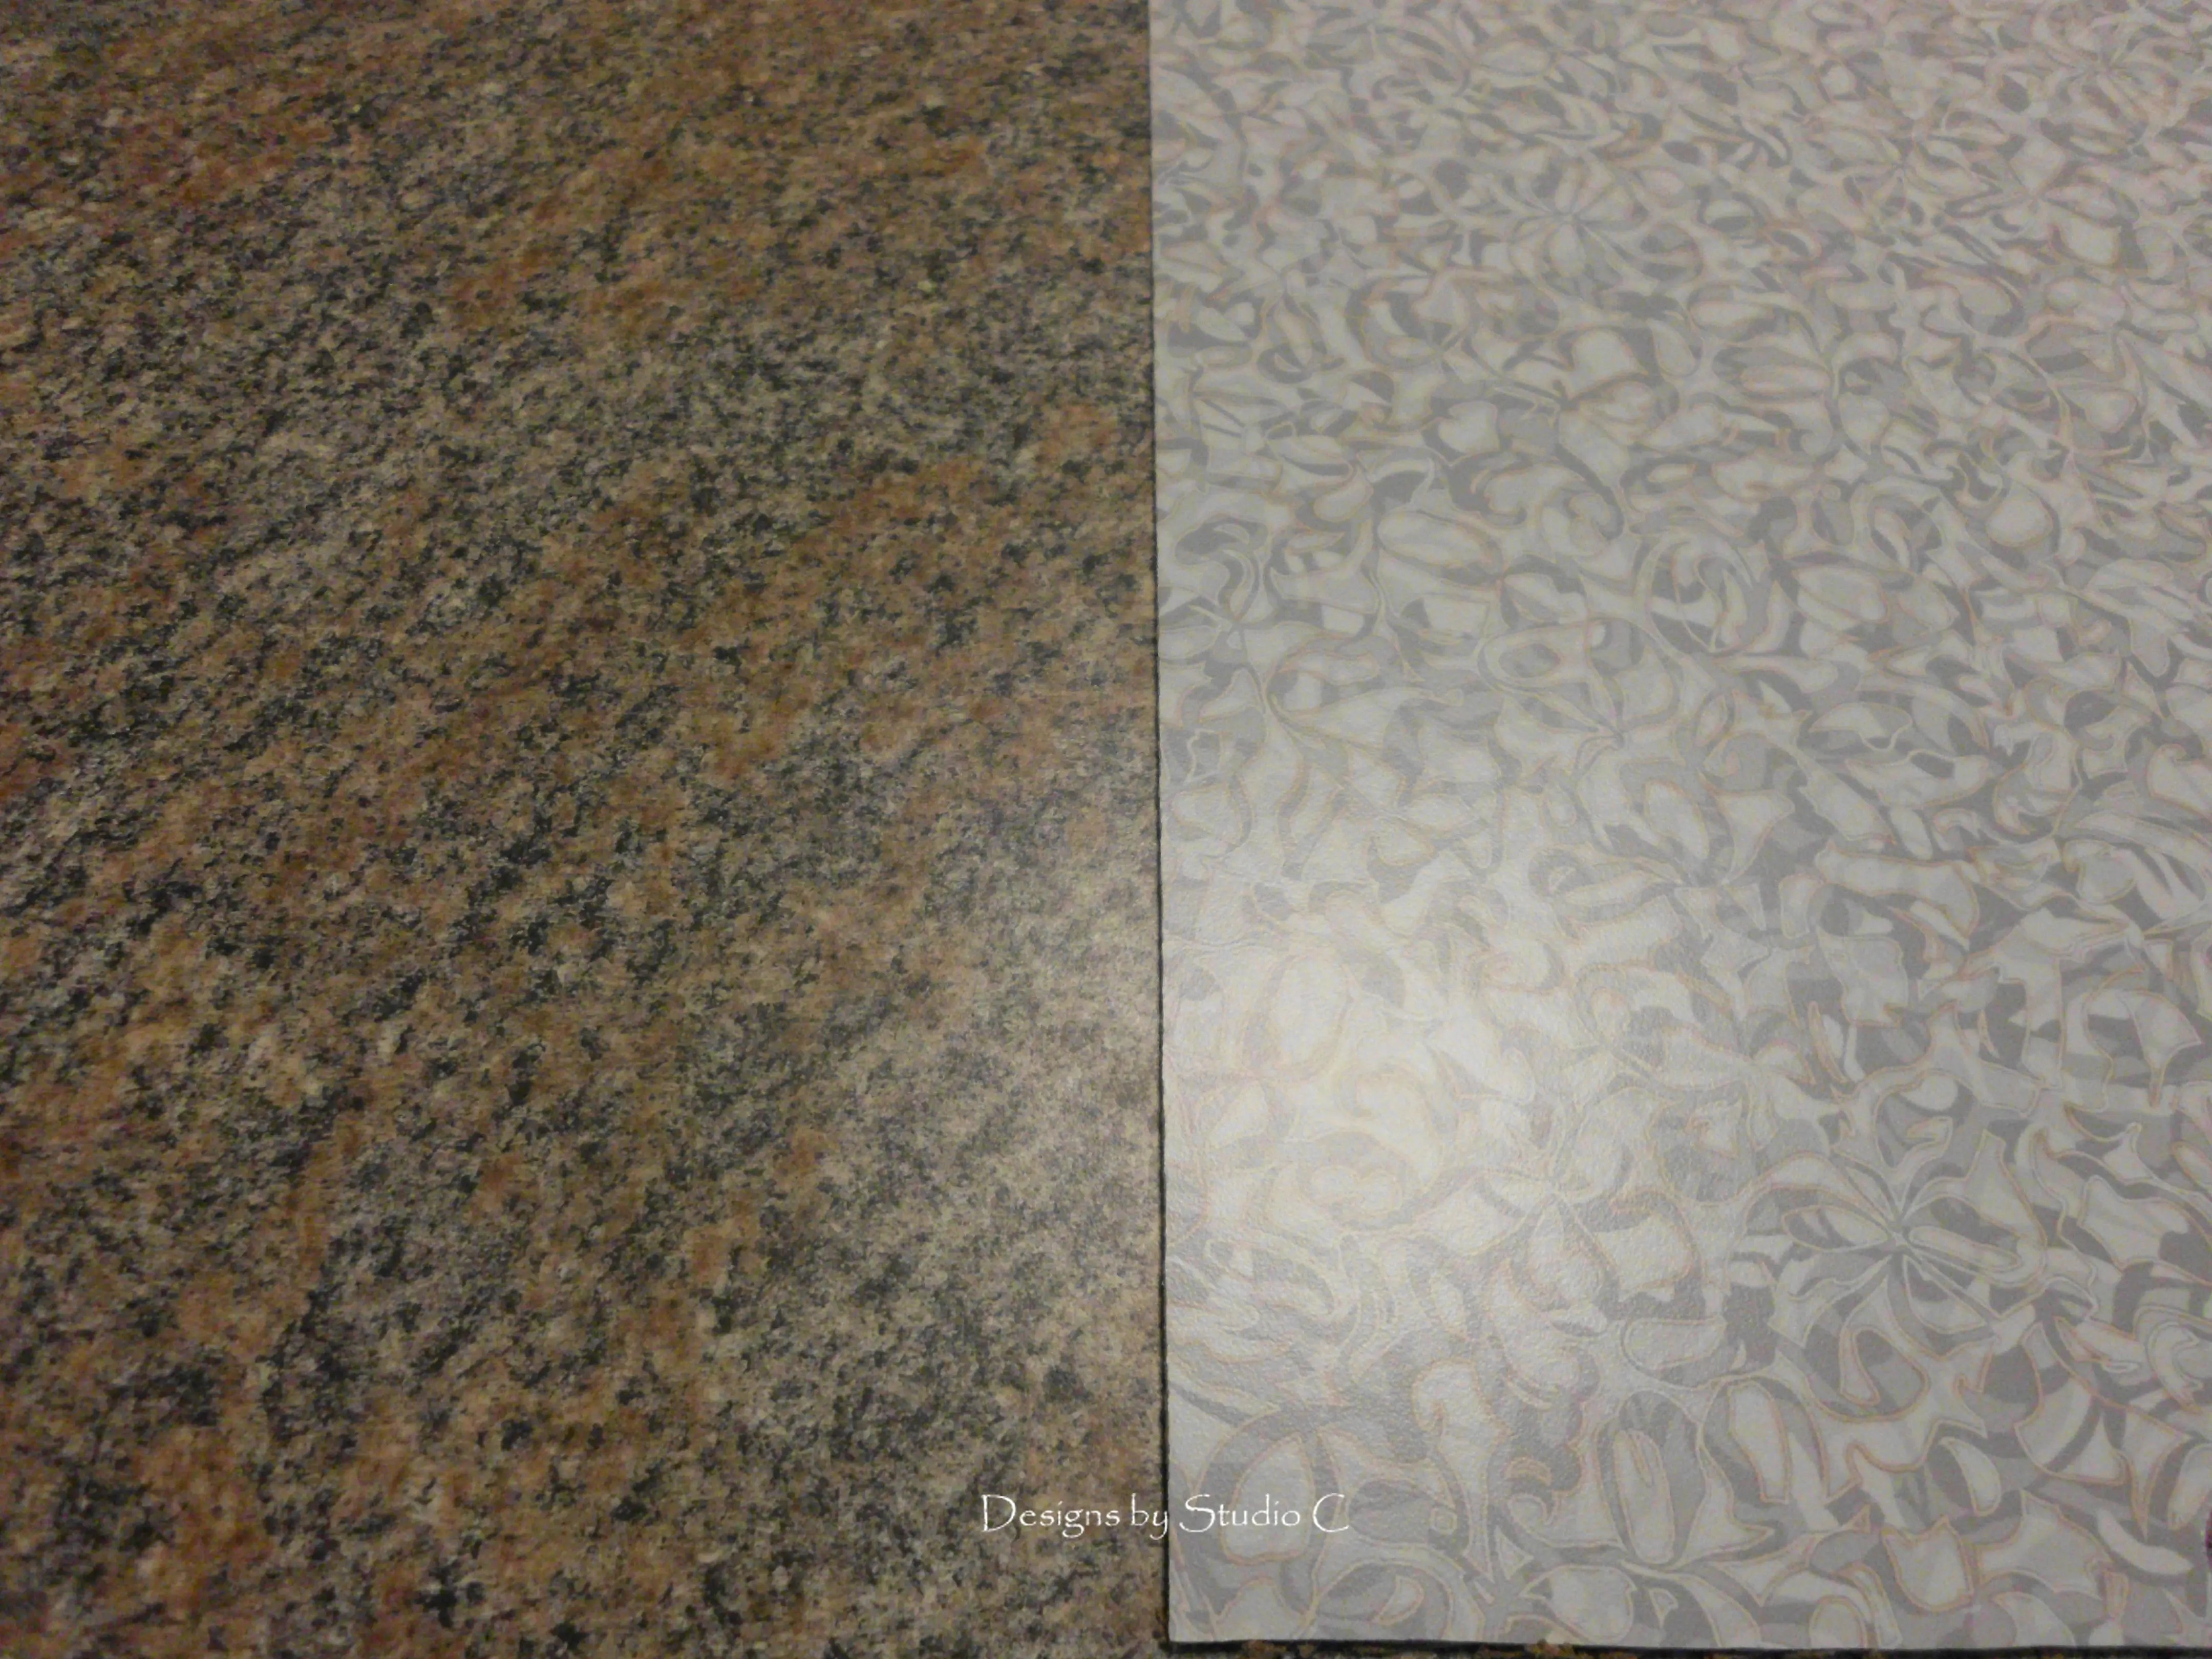 How To Remove Super Glue From Laminate Countertop Applying Laminate To A Countertop